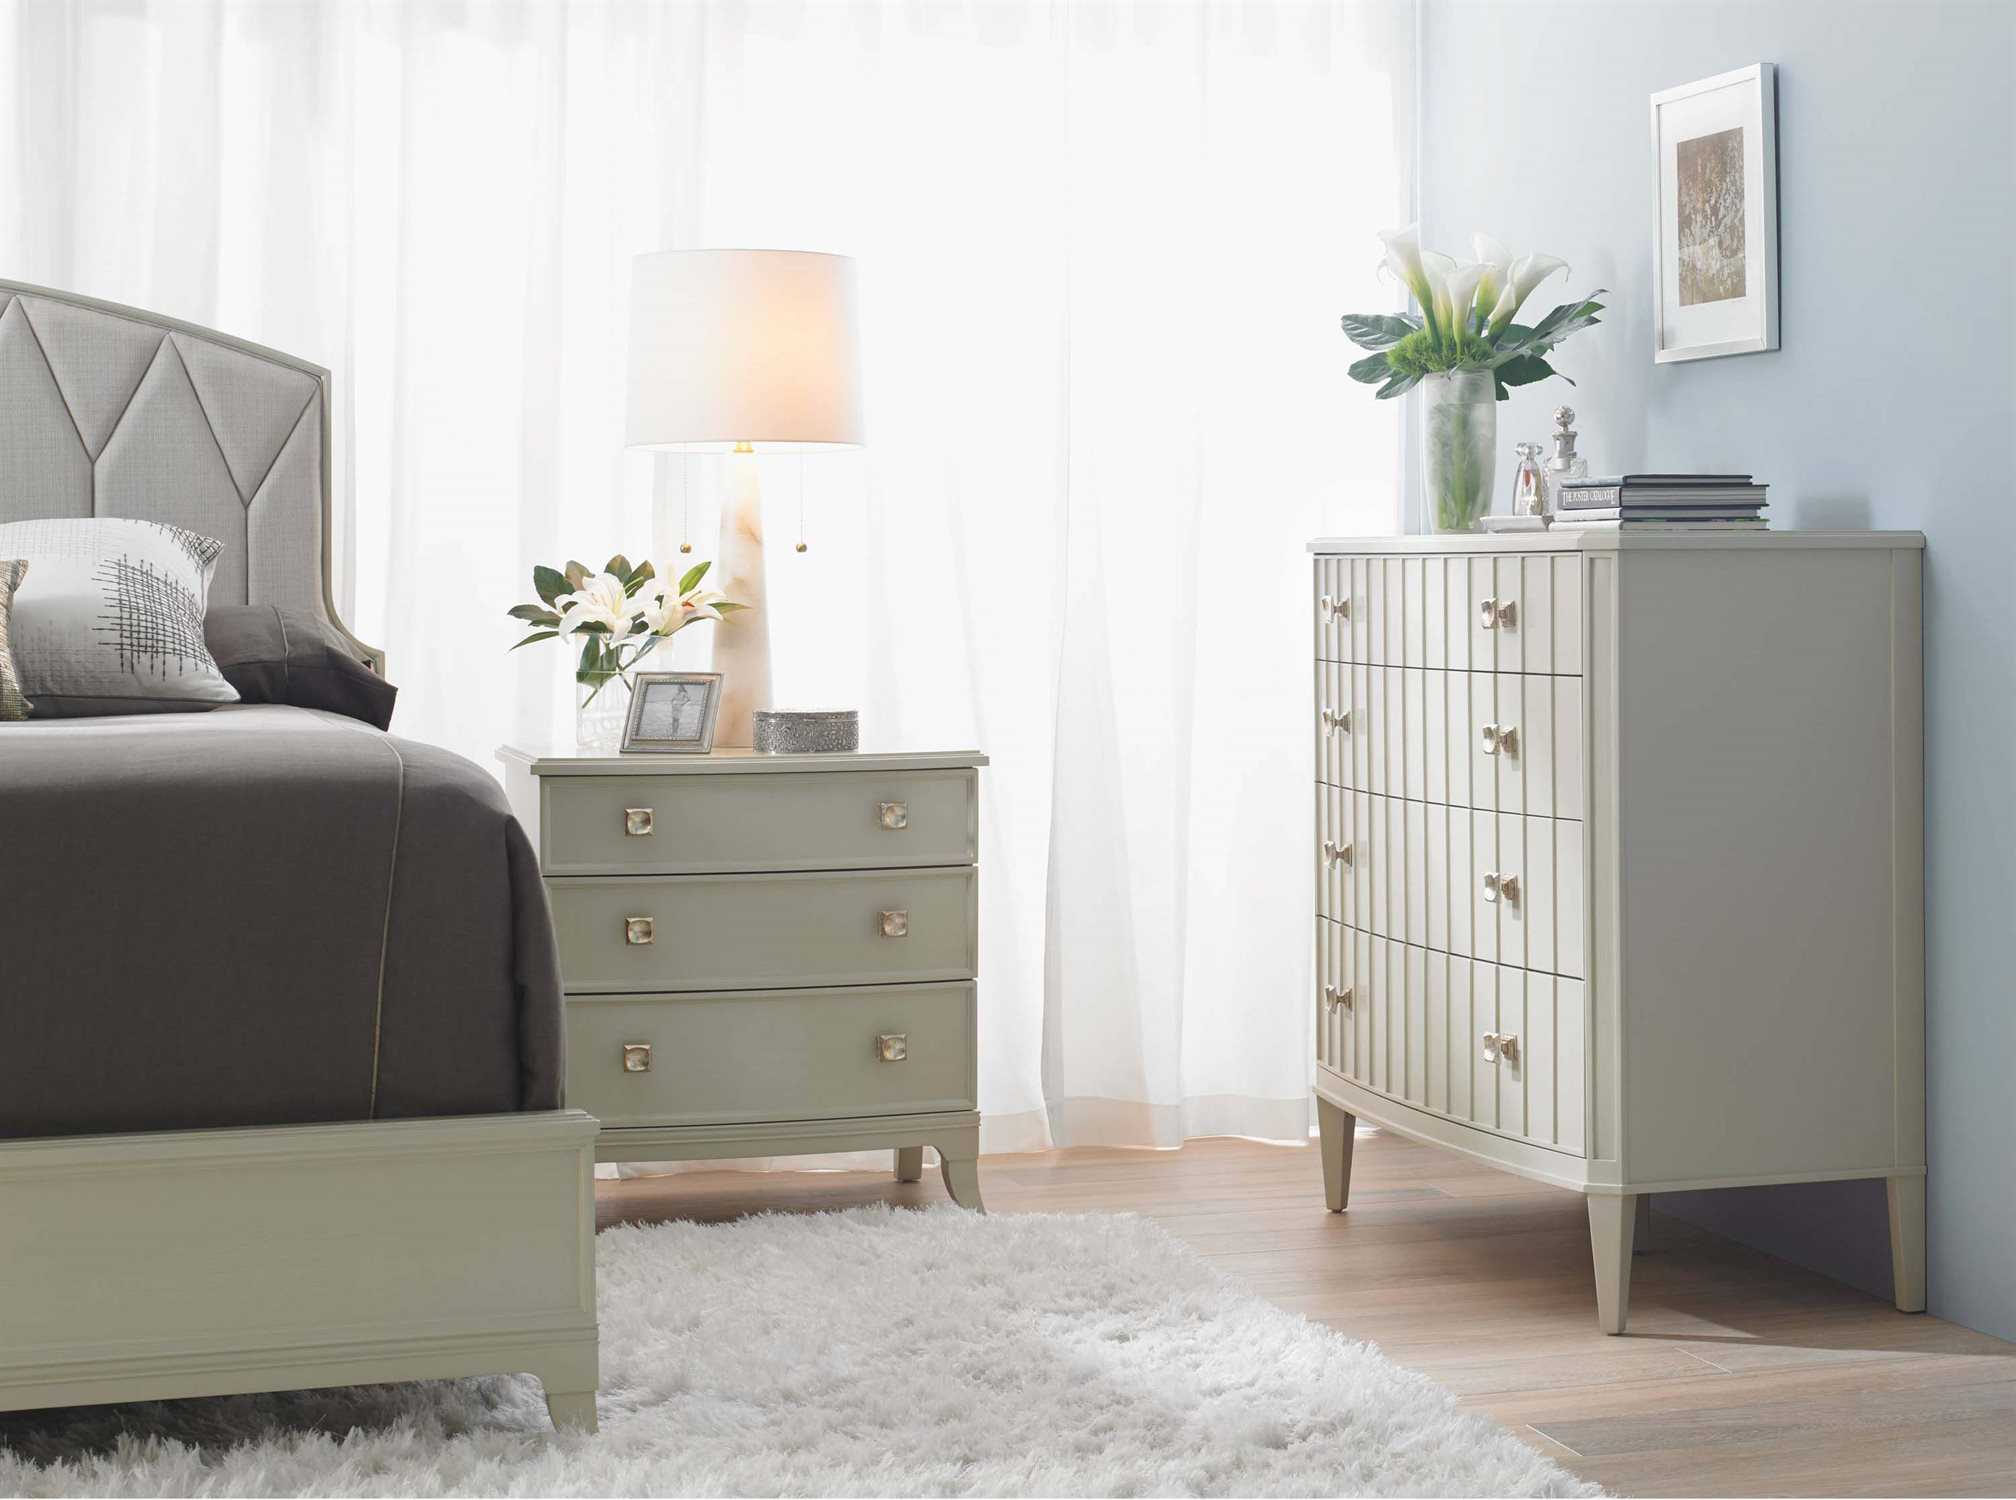 Stanley Furniture Crestaire Bedroom Set